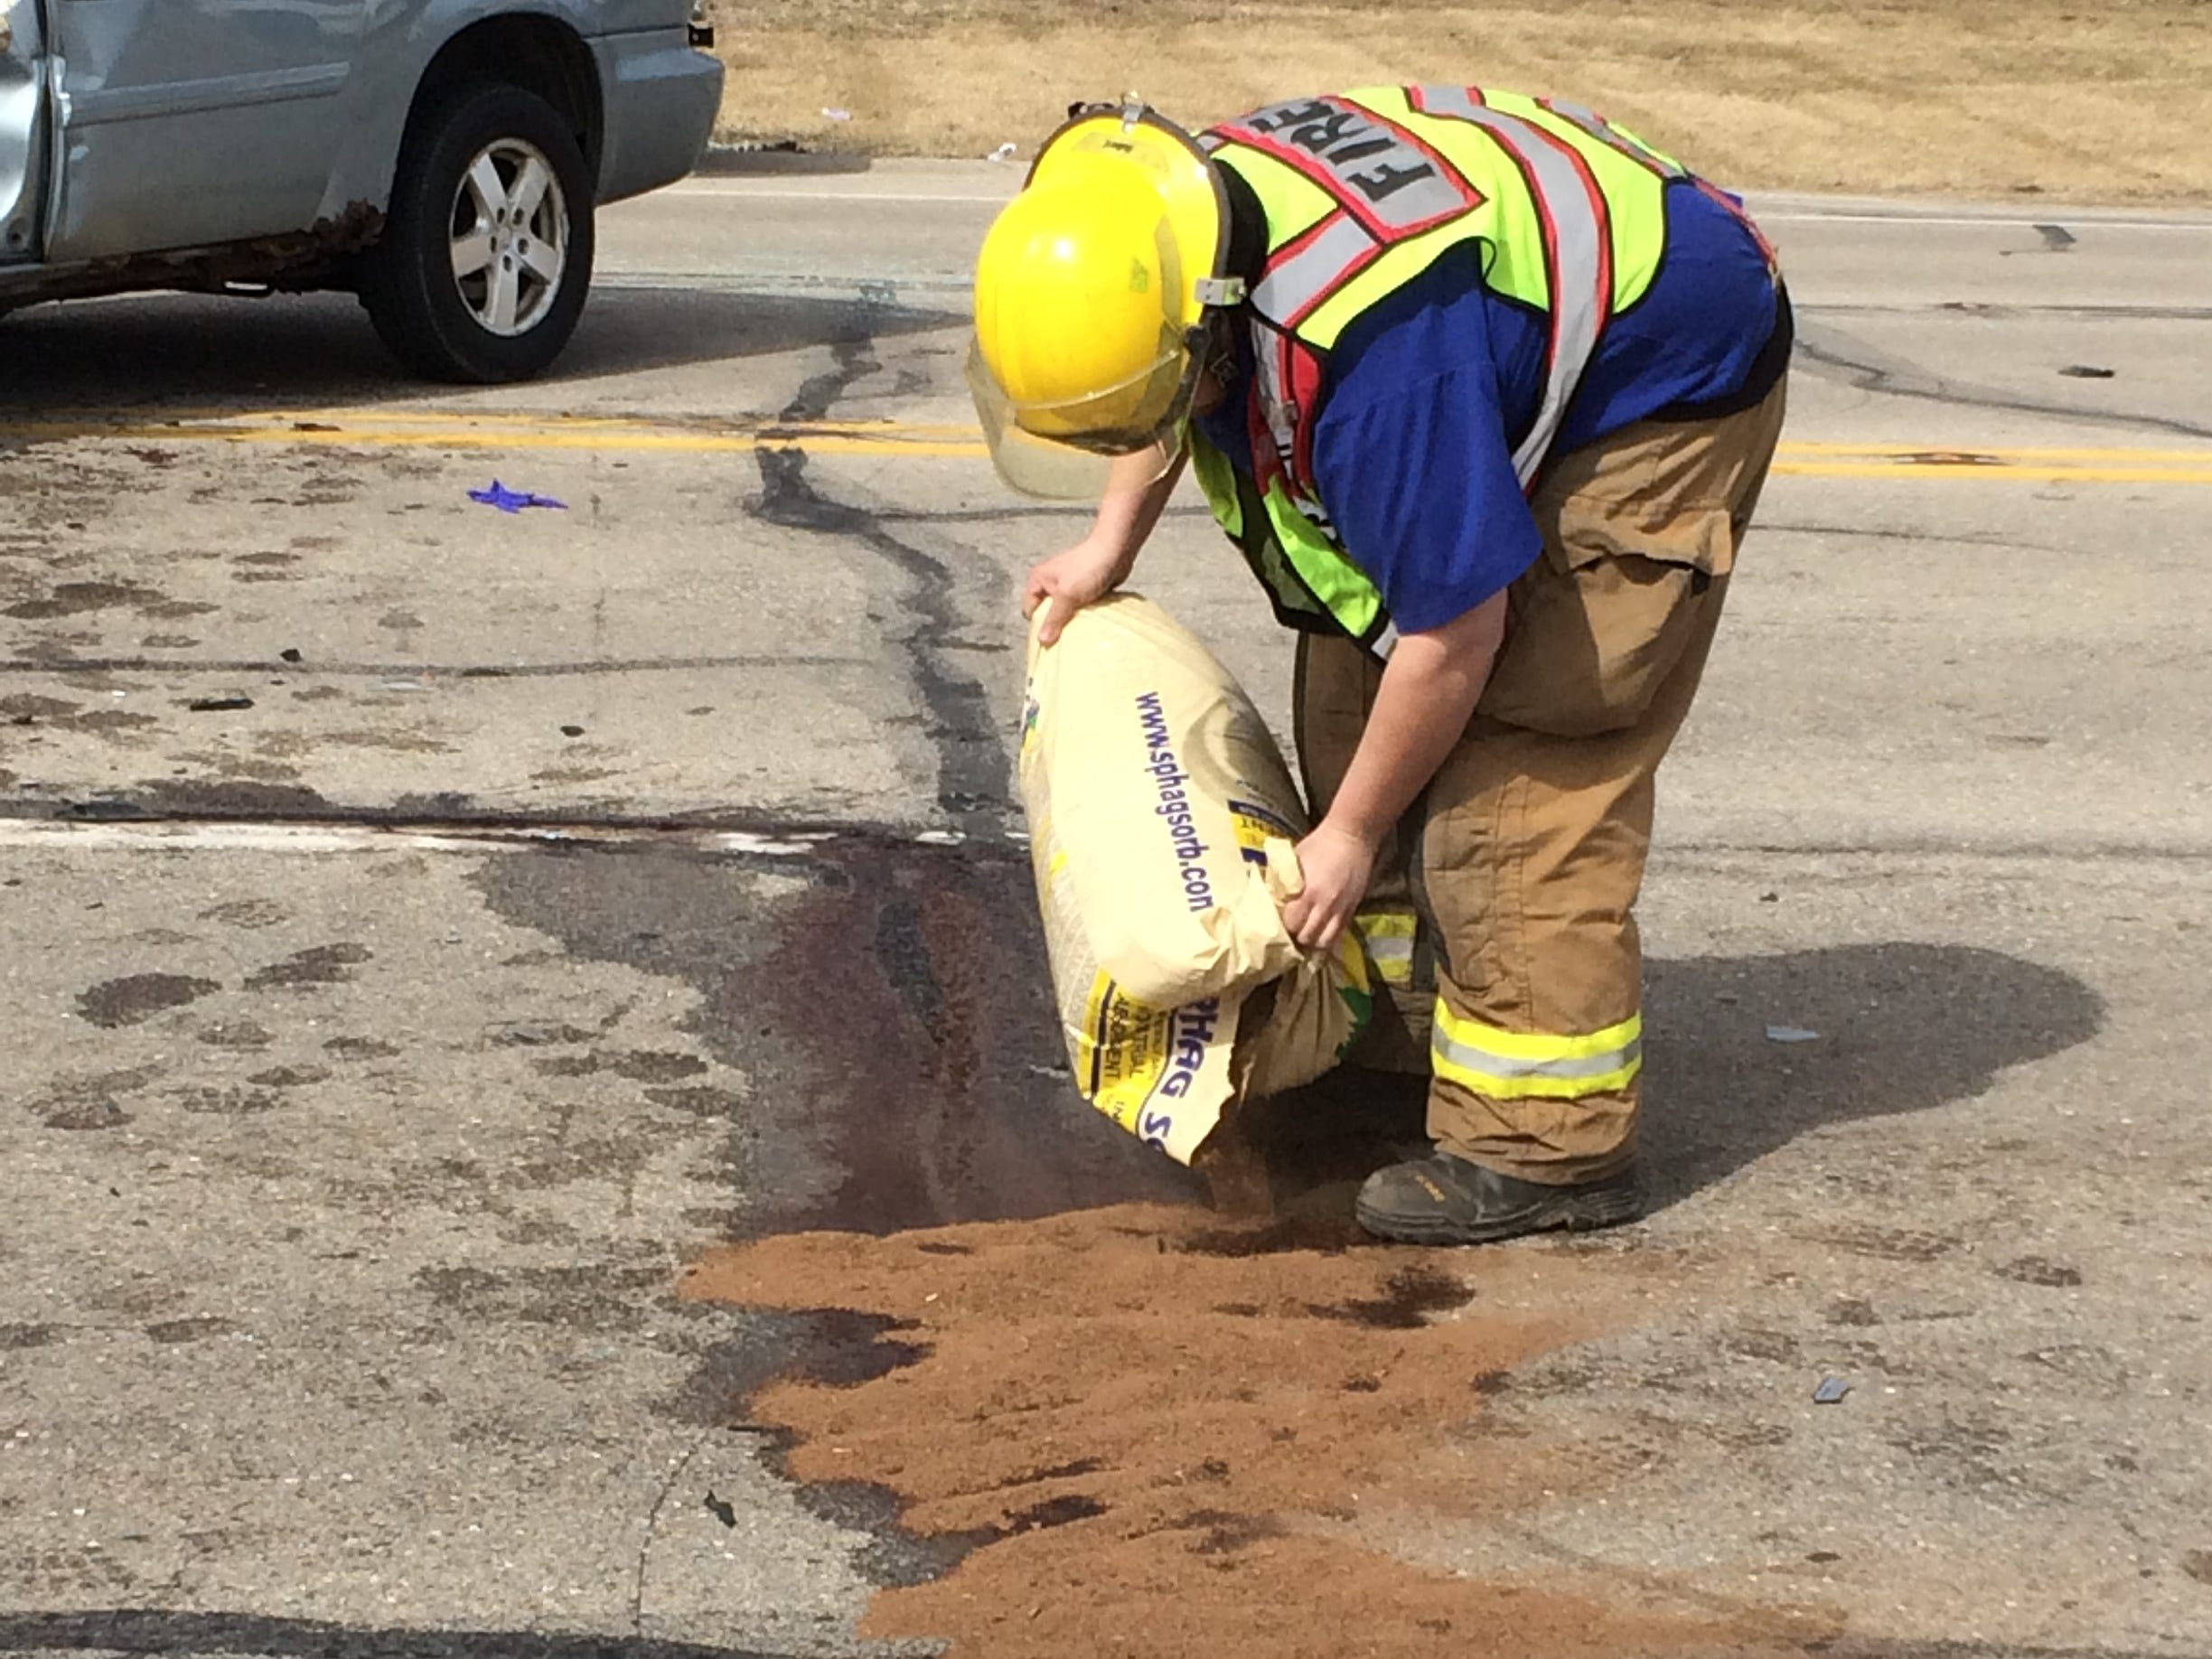 Centerville Fire/Rescue personnel cleaned up fluids in the roadway after a Tuesday afternoon accident in the 3900 block of National Road West.